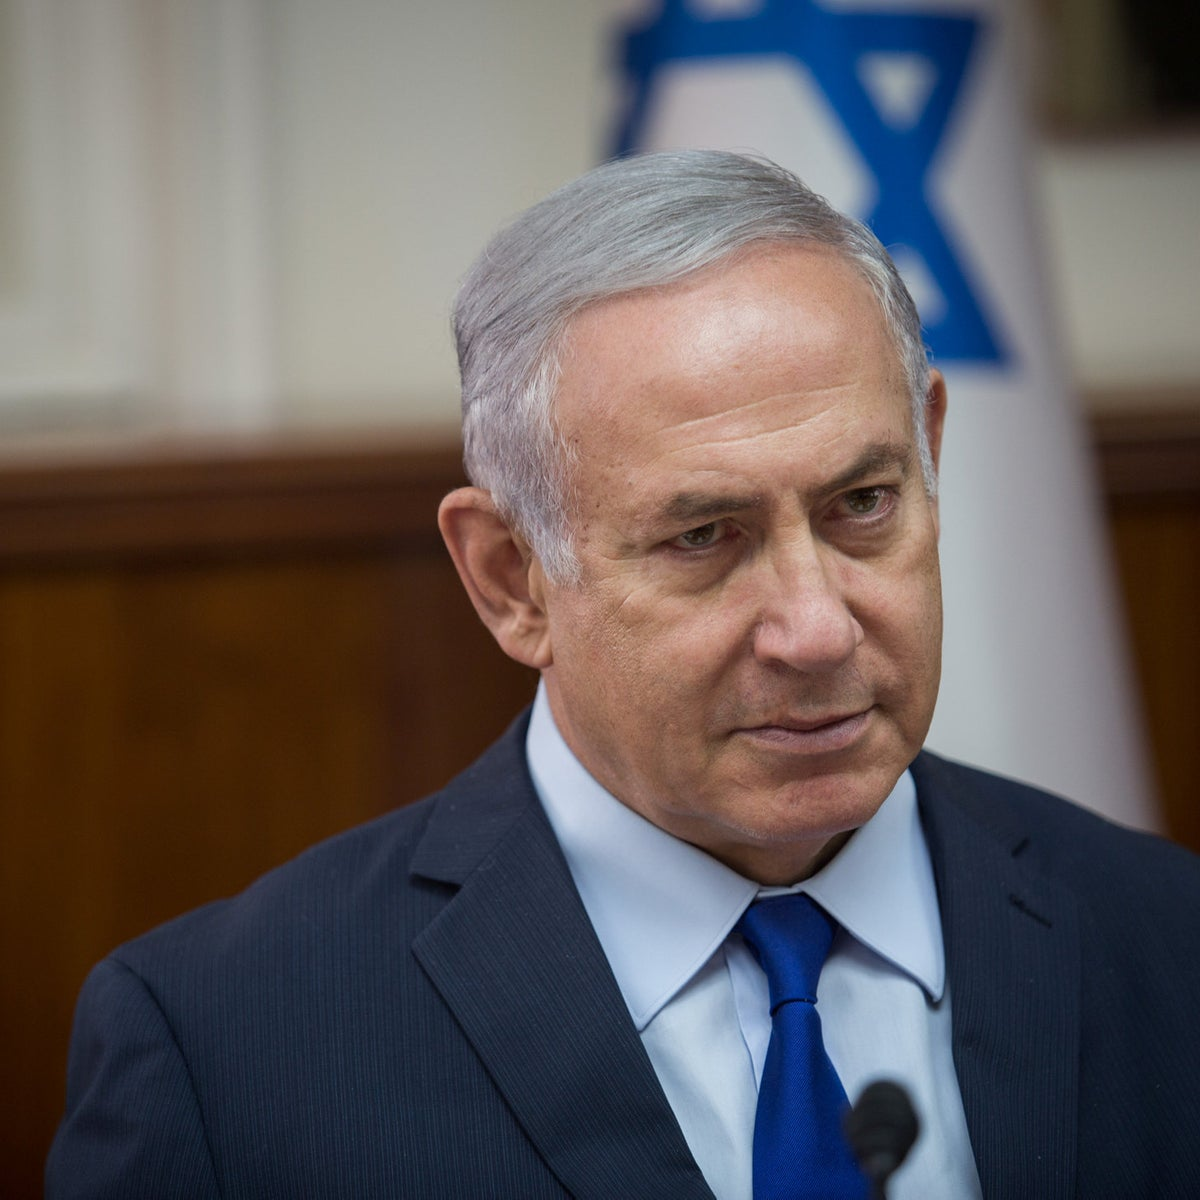 Did Netanyahu put forward a proposal he knew had no chance of being accepted?